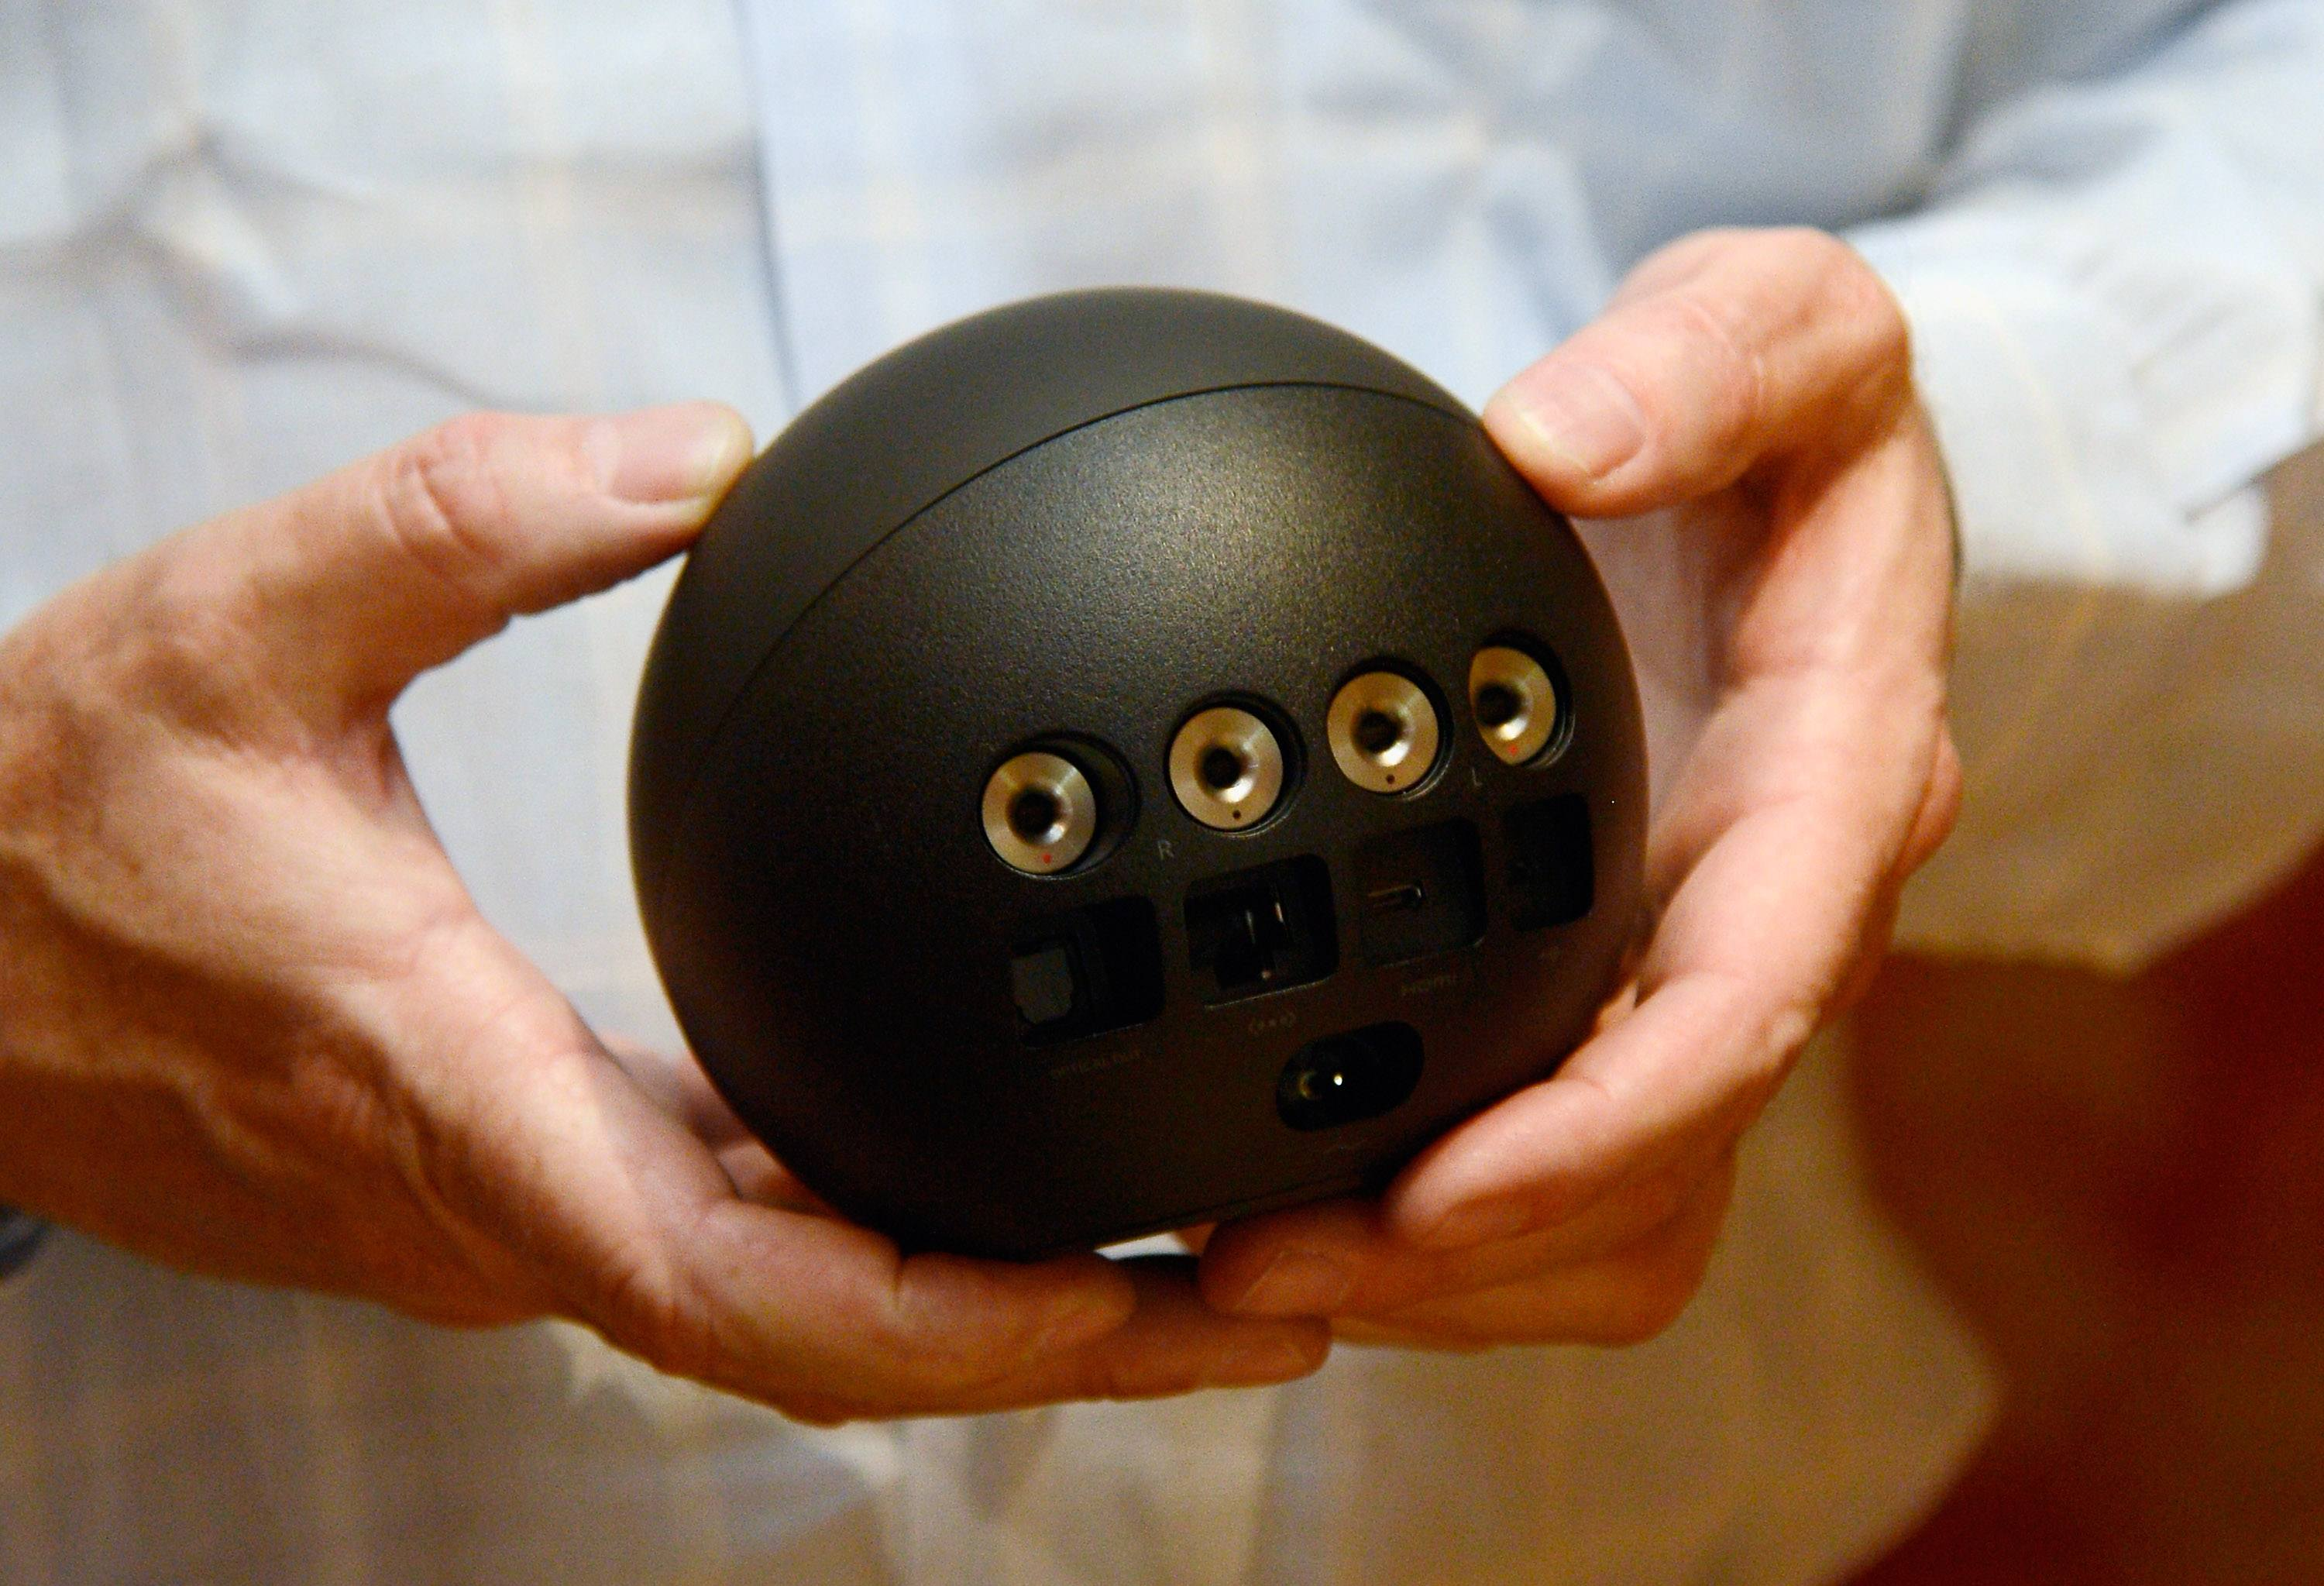 Man holding Google Nexus Q, one of the worst failed products in the tech sector